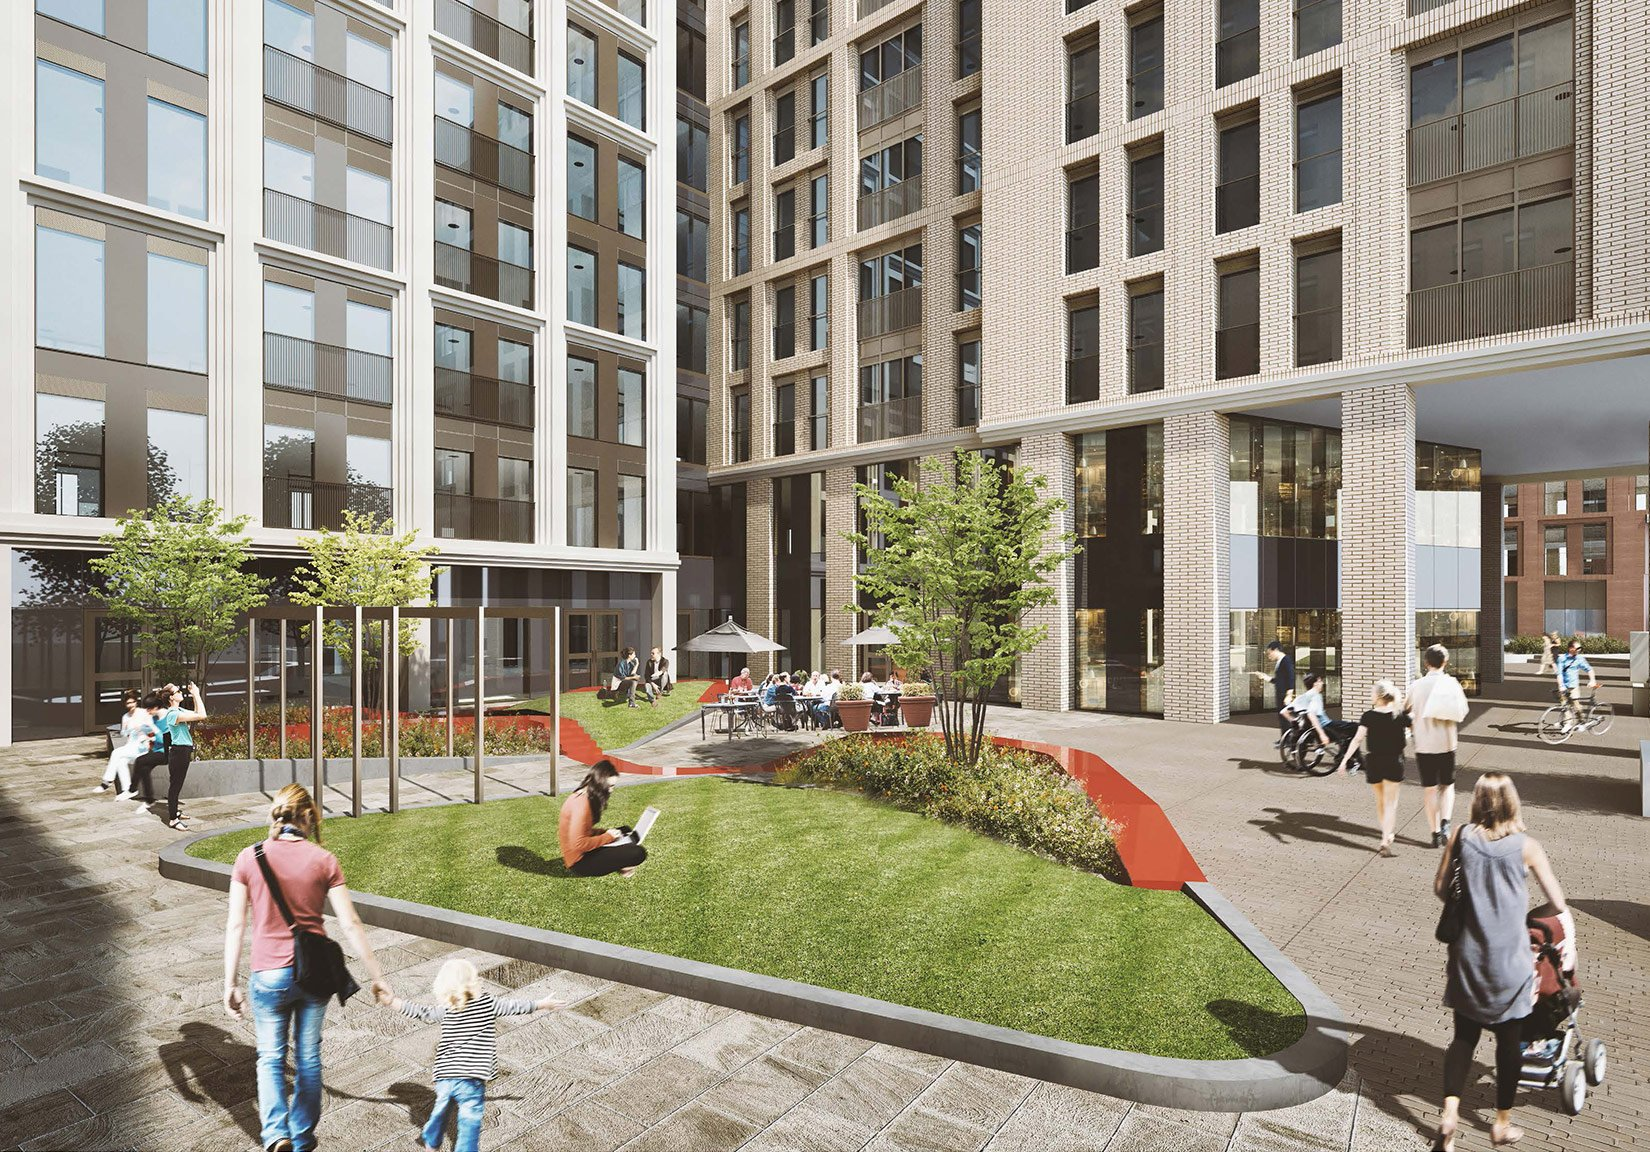 St Cecilia Place, Quarry Hill, Leeds, 3D Visual Courtyard Space